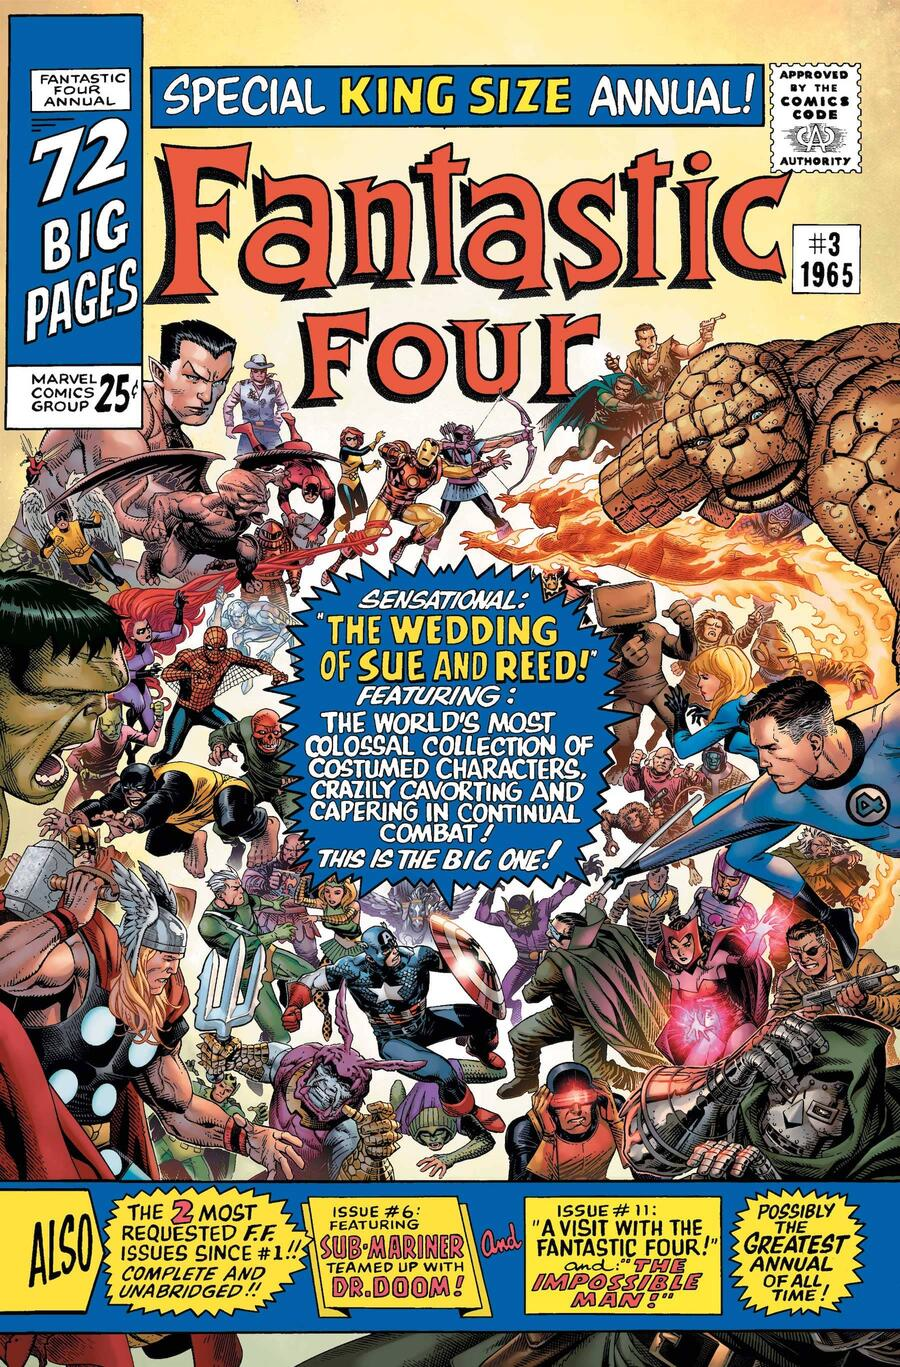 FANTASTIC FOUR ANNIVERSARY TRIBUTE #1 variant cover by Jim Cheung